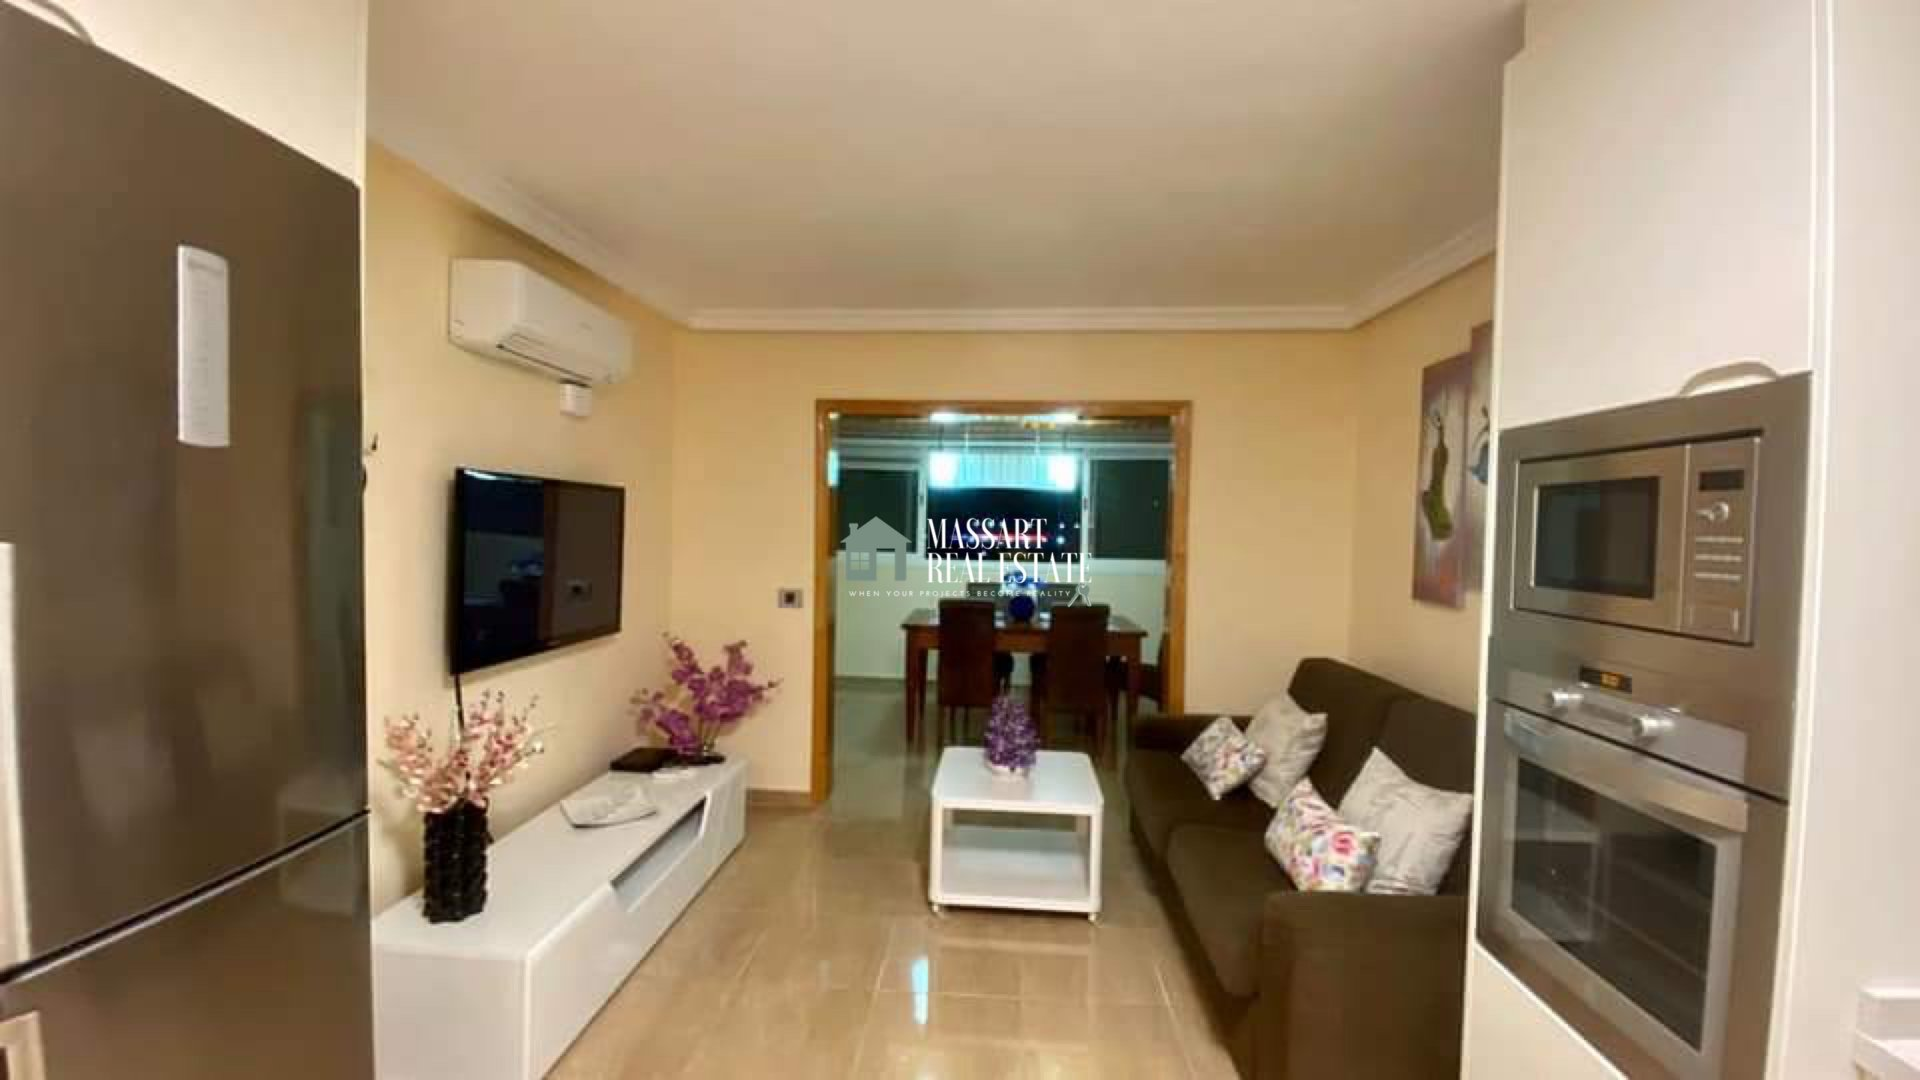 Recently renovated and fully furnished apartment, located in Los Cristianos, in the residential complex Cristian Playa.